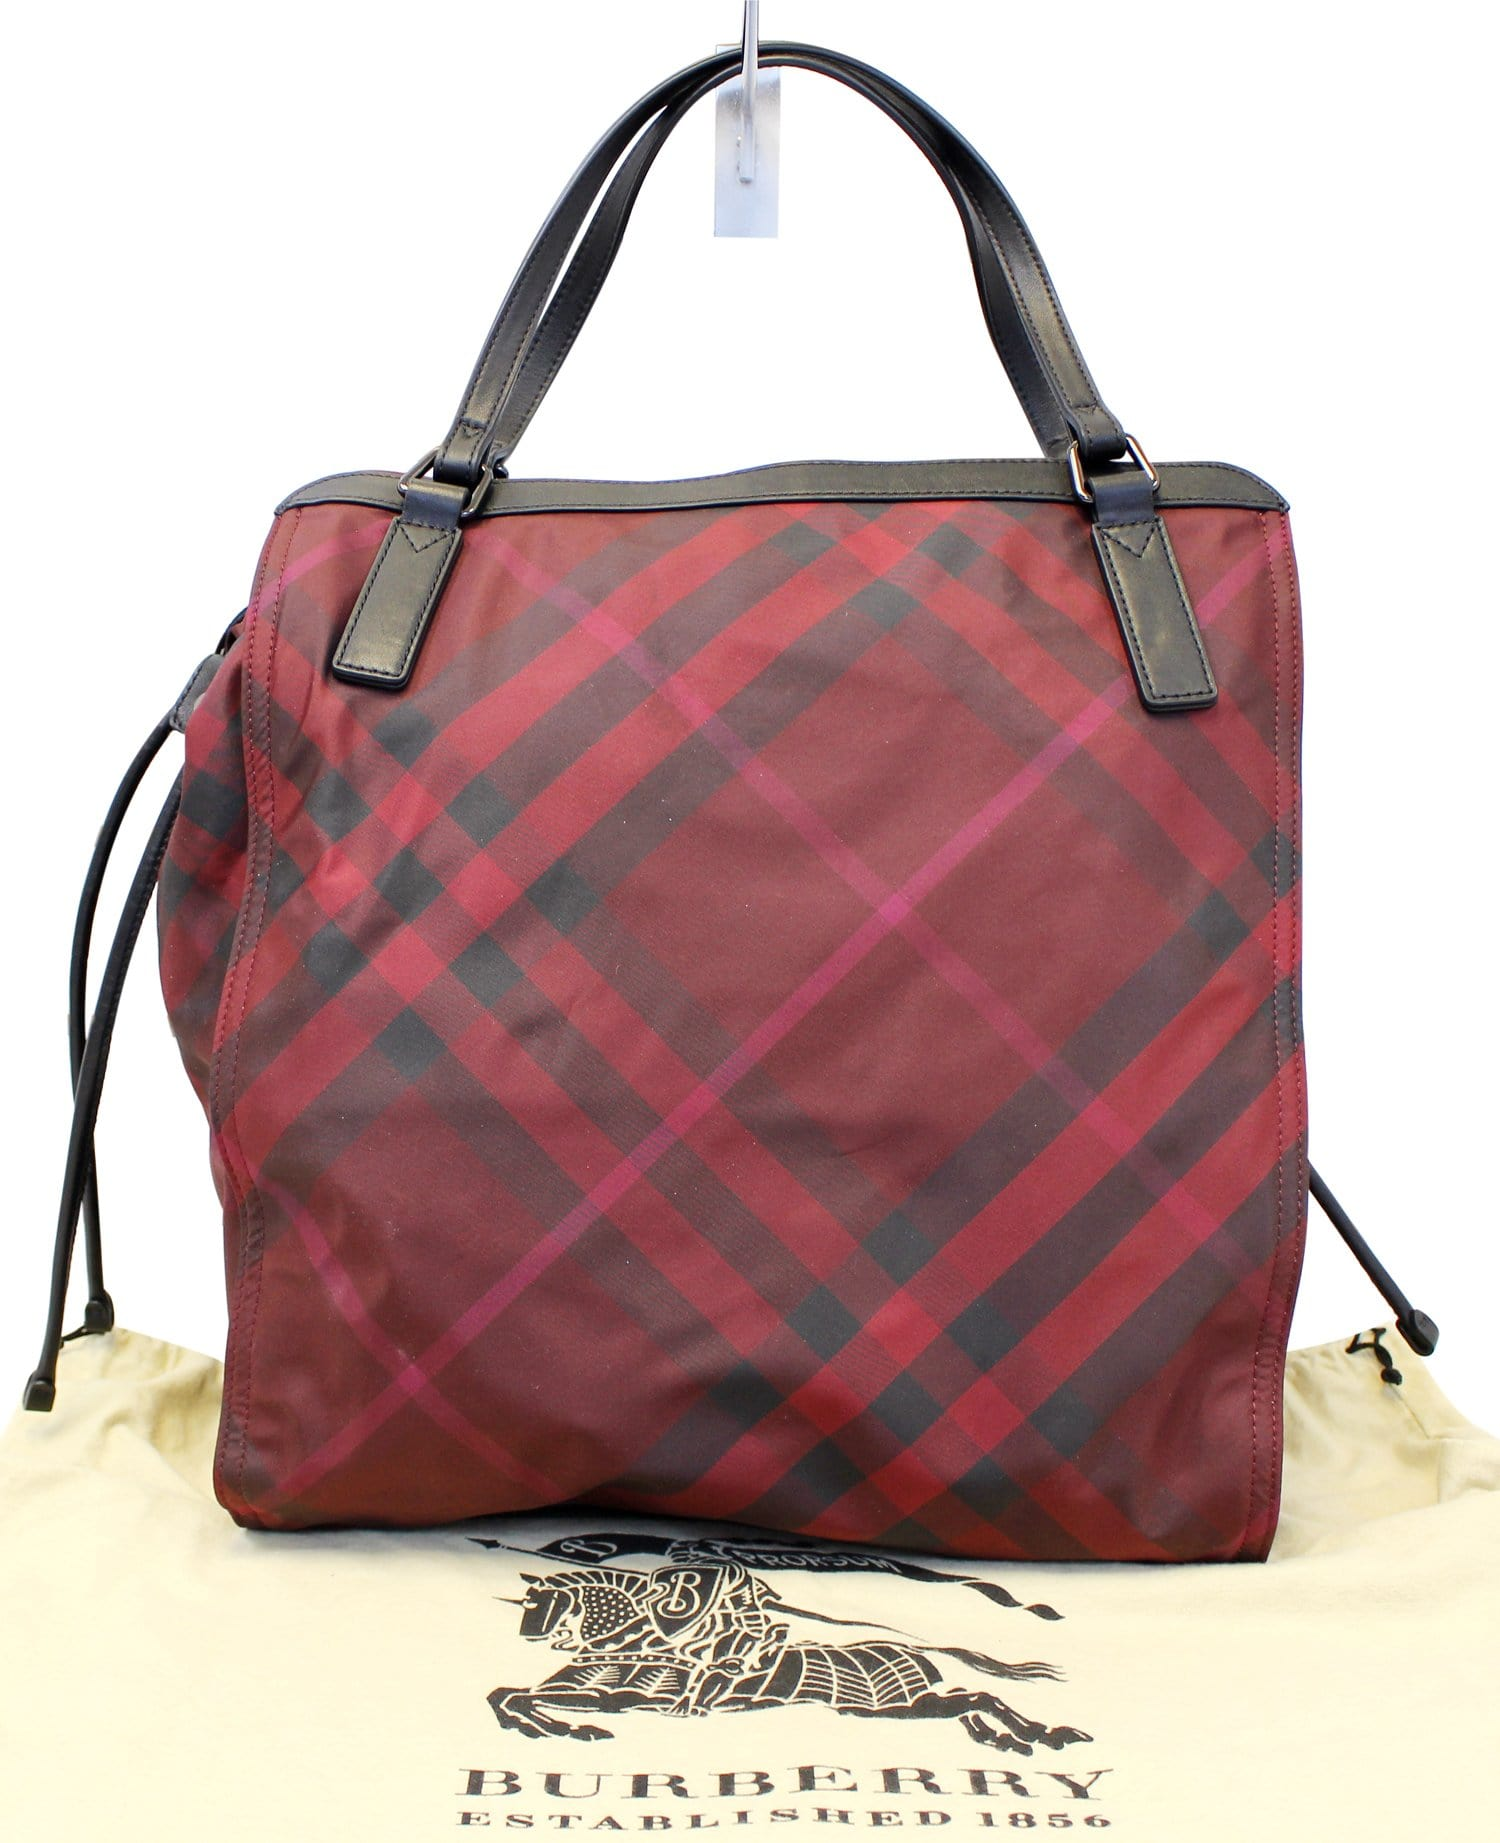 2eeeefb67a50 Burberry Buckleigh Packable Burgundy Nylon Leather Tote Shoulder Bag TT2127